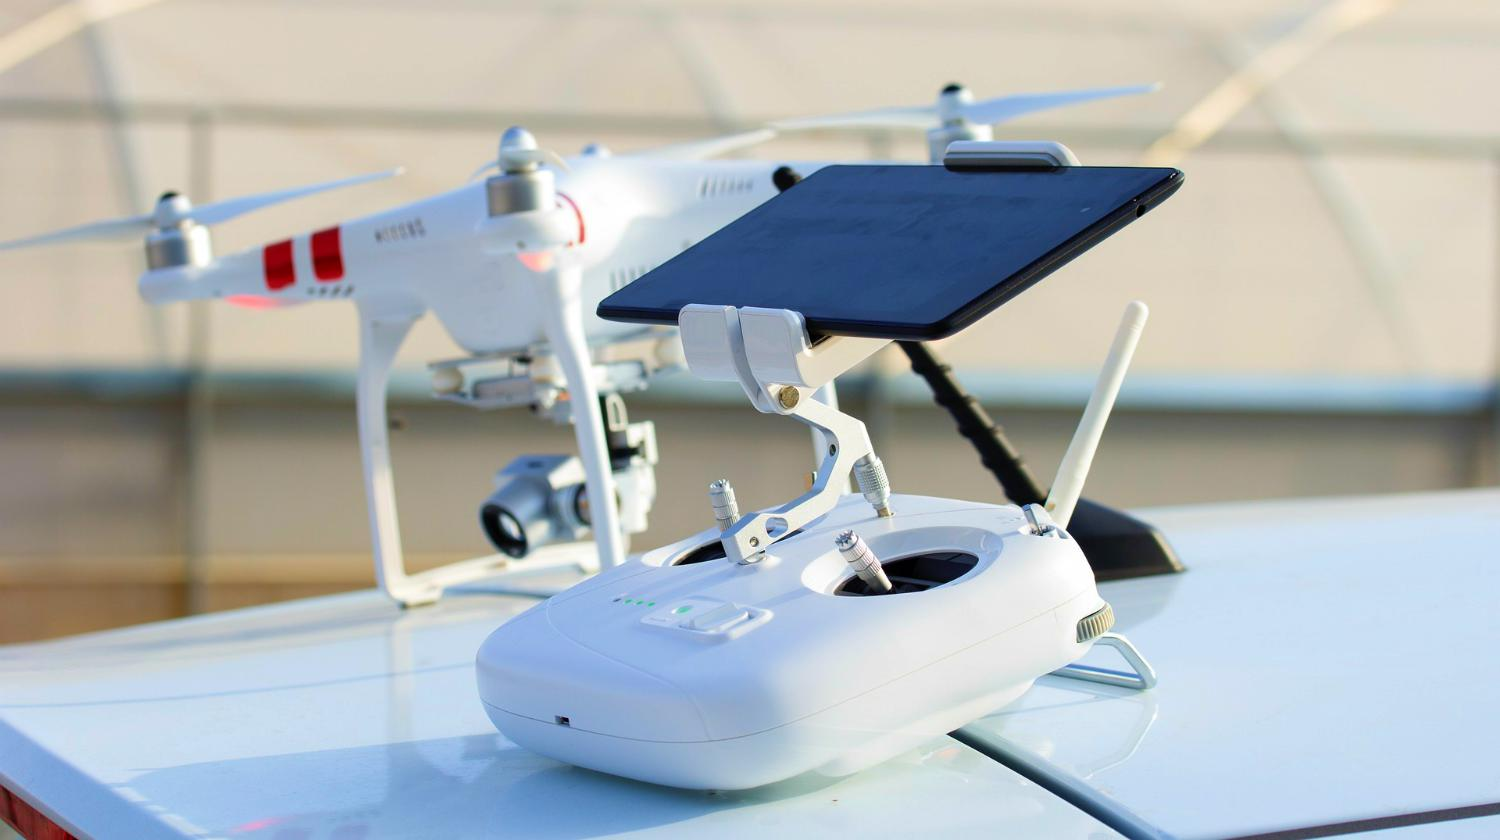 Featured | Best Robotics and Drone Stocks Investors Might Want to Check Out | drone stocks | drone manufacturing stocks